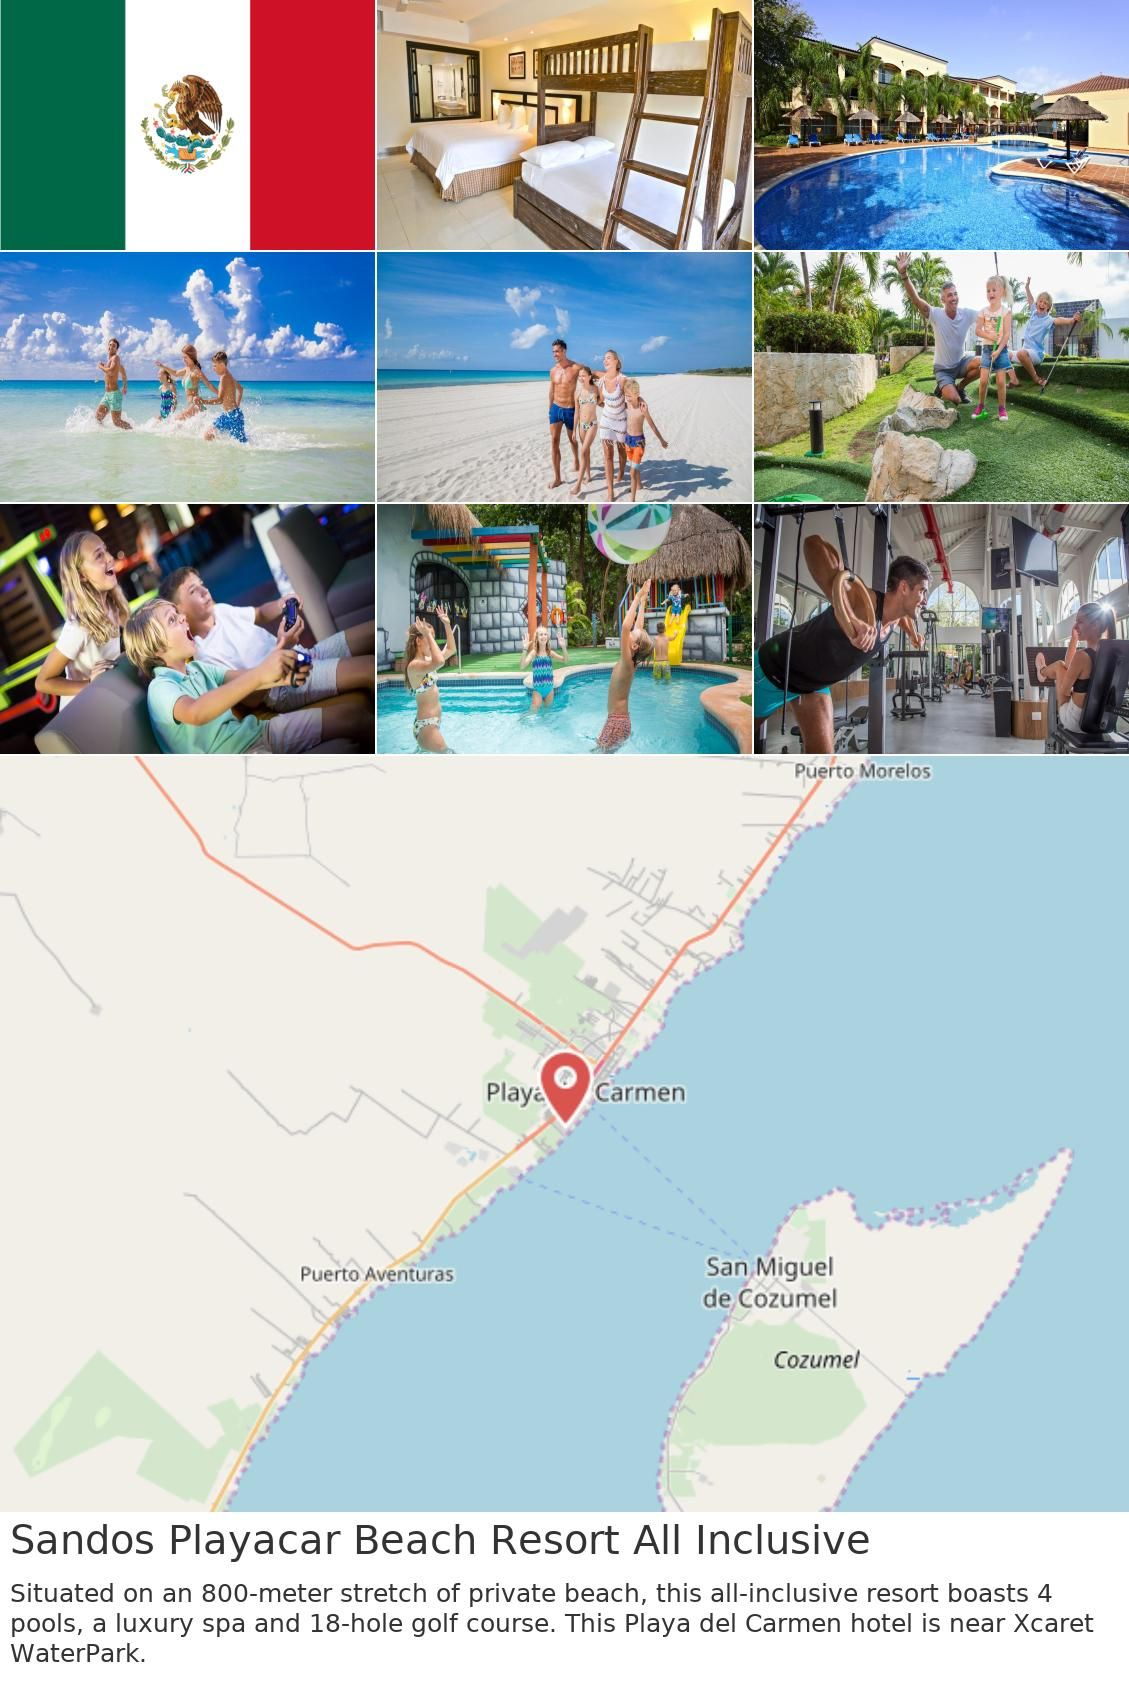 Sandos Playacar Beach Resort All Inclusive All Inclusive Resorts